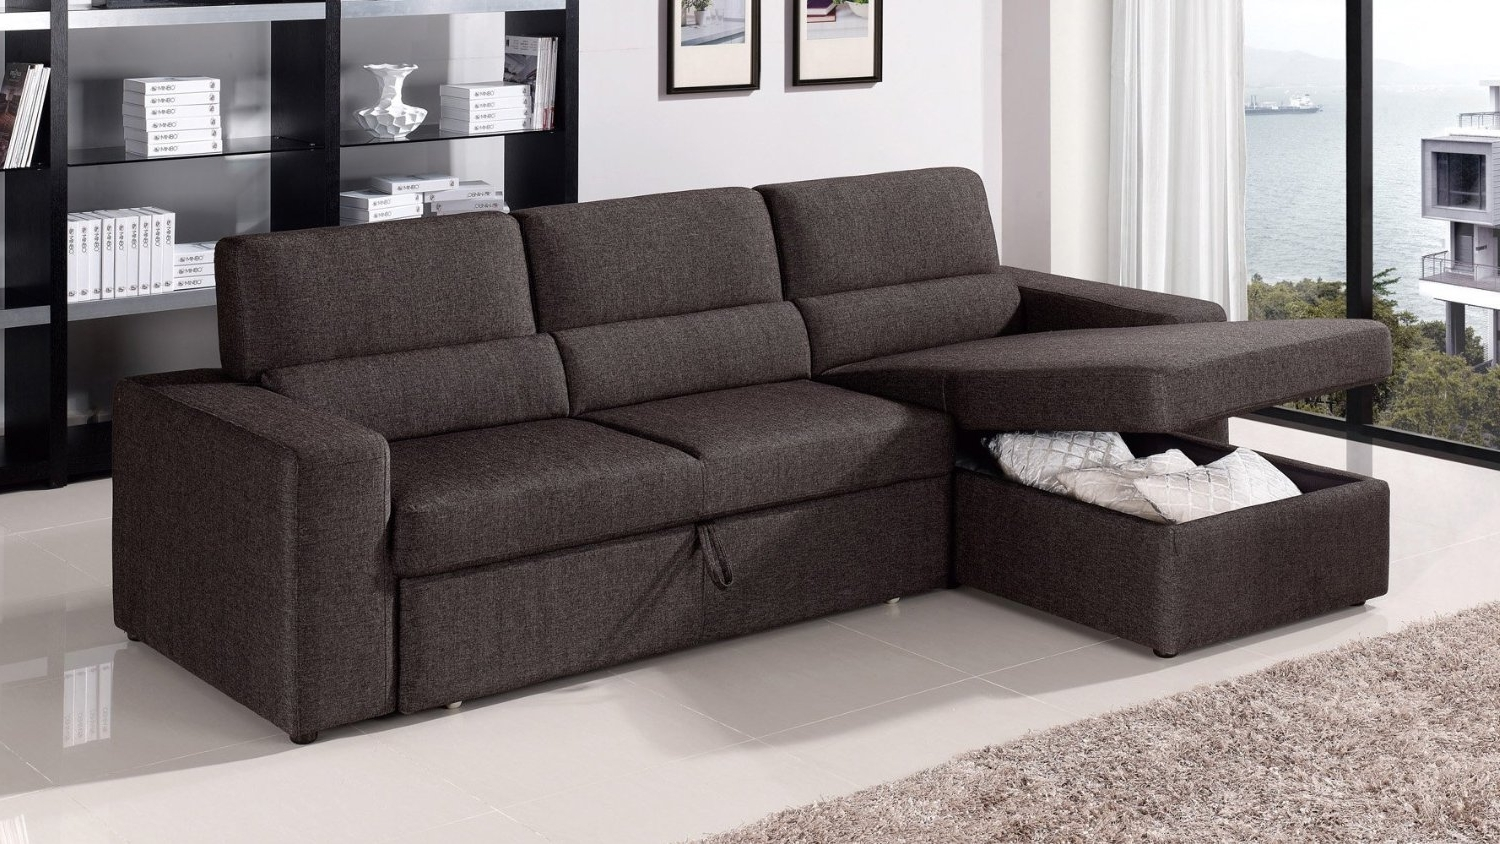 Trendy Sectional Sofas With Sleeper Inside Black Sectional Sofa Sleeper — Fabrizio Design : How To Make (View 10 of 20)